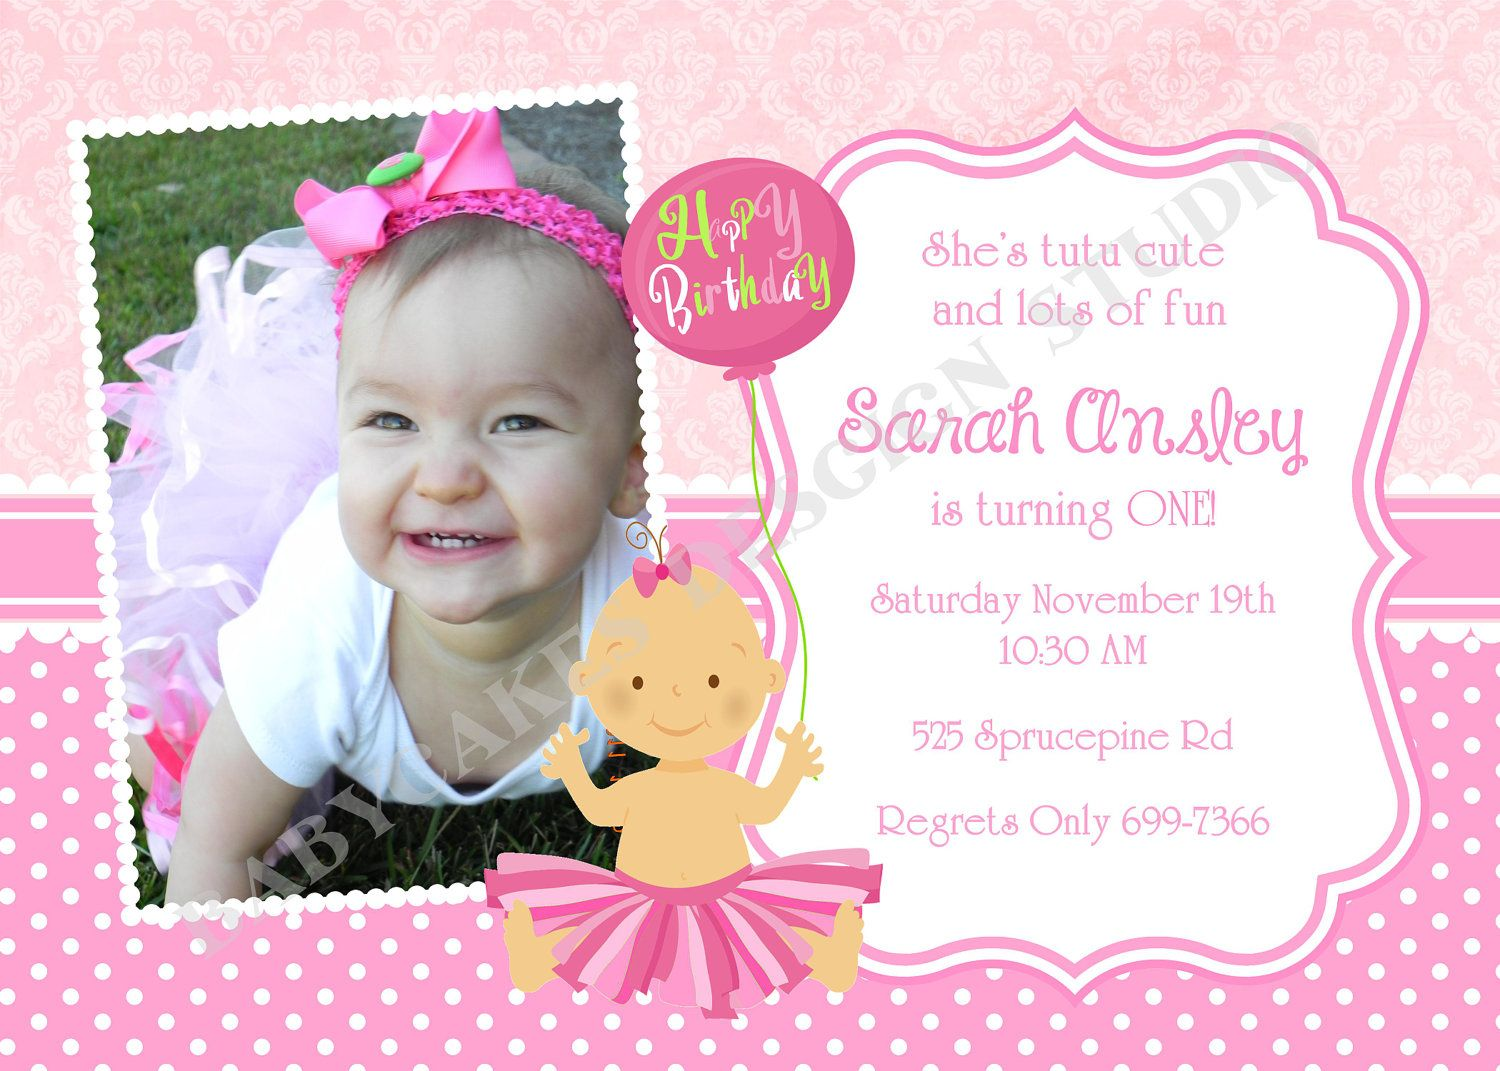 St Birthday Invitation Photo Tutu Princess DIY Print Your Own - Baby girl first birthday invitation ideas